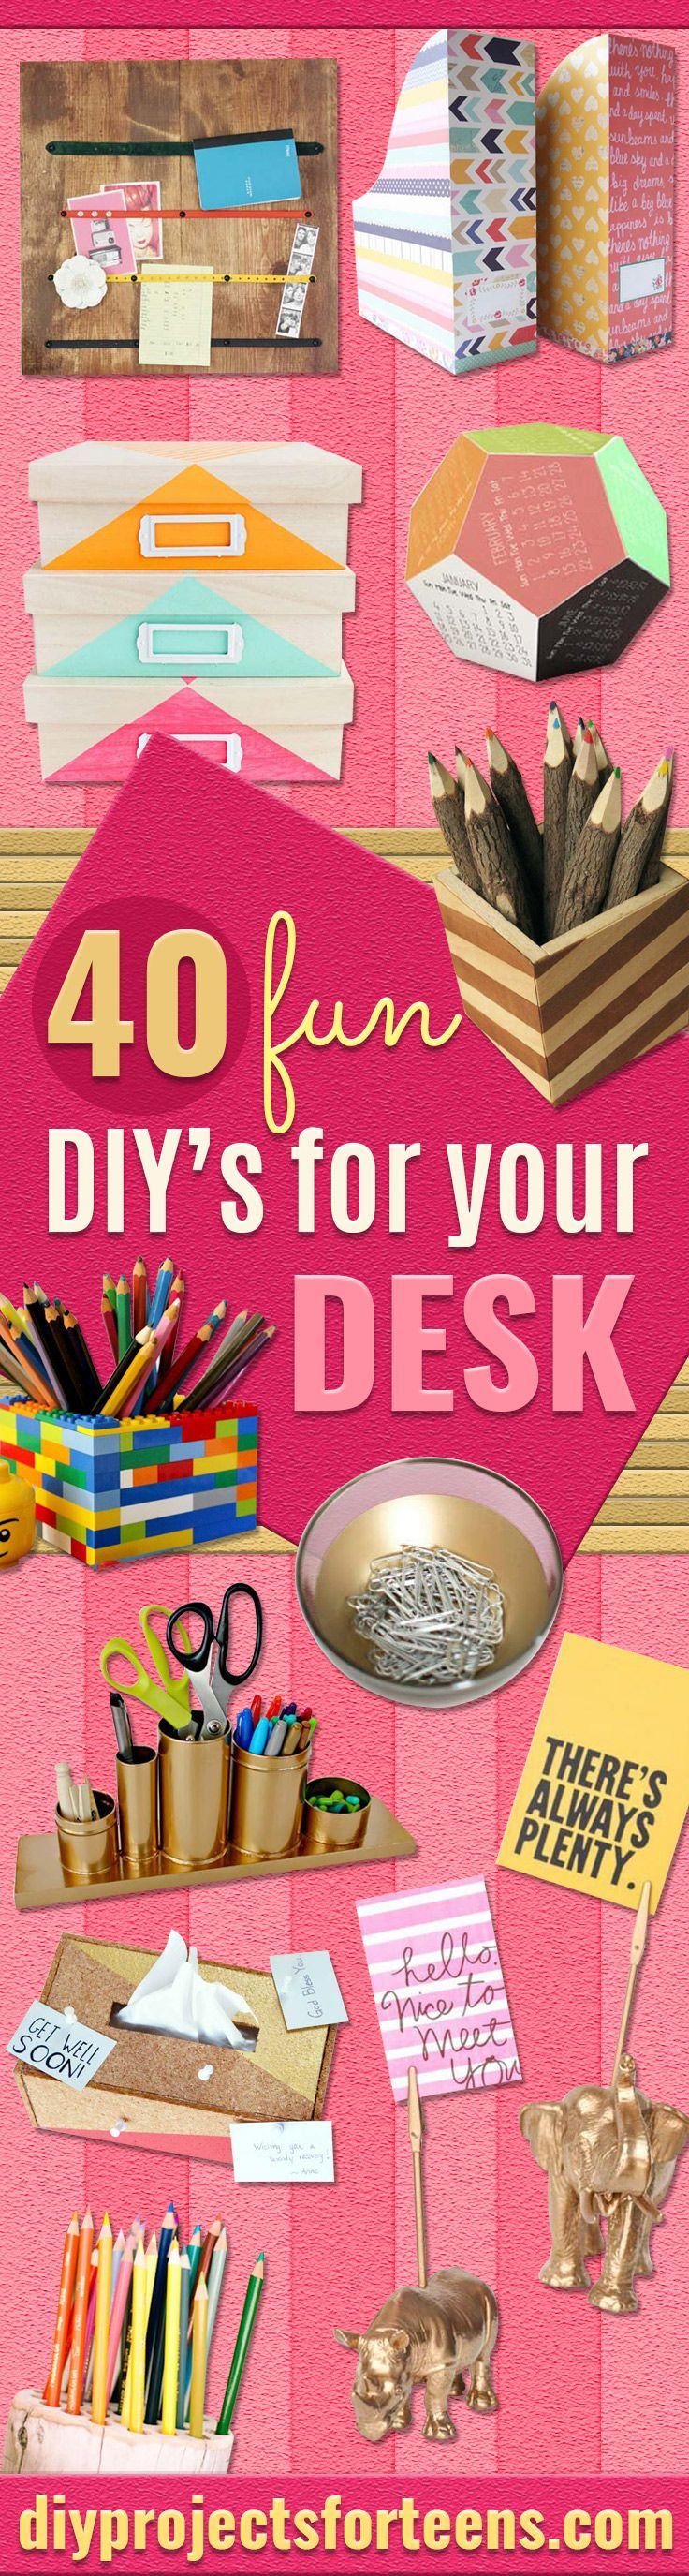 25  unique DIY and crafts ideas on Pinterest   Fun diy crafts  Cute diys  and Decorative accents. 25  unique DIY and crafts ideas on Pinterest   Fun diy crafts